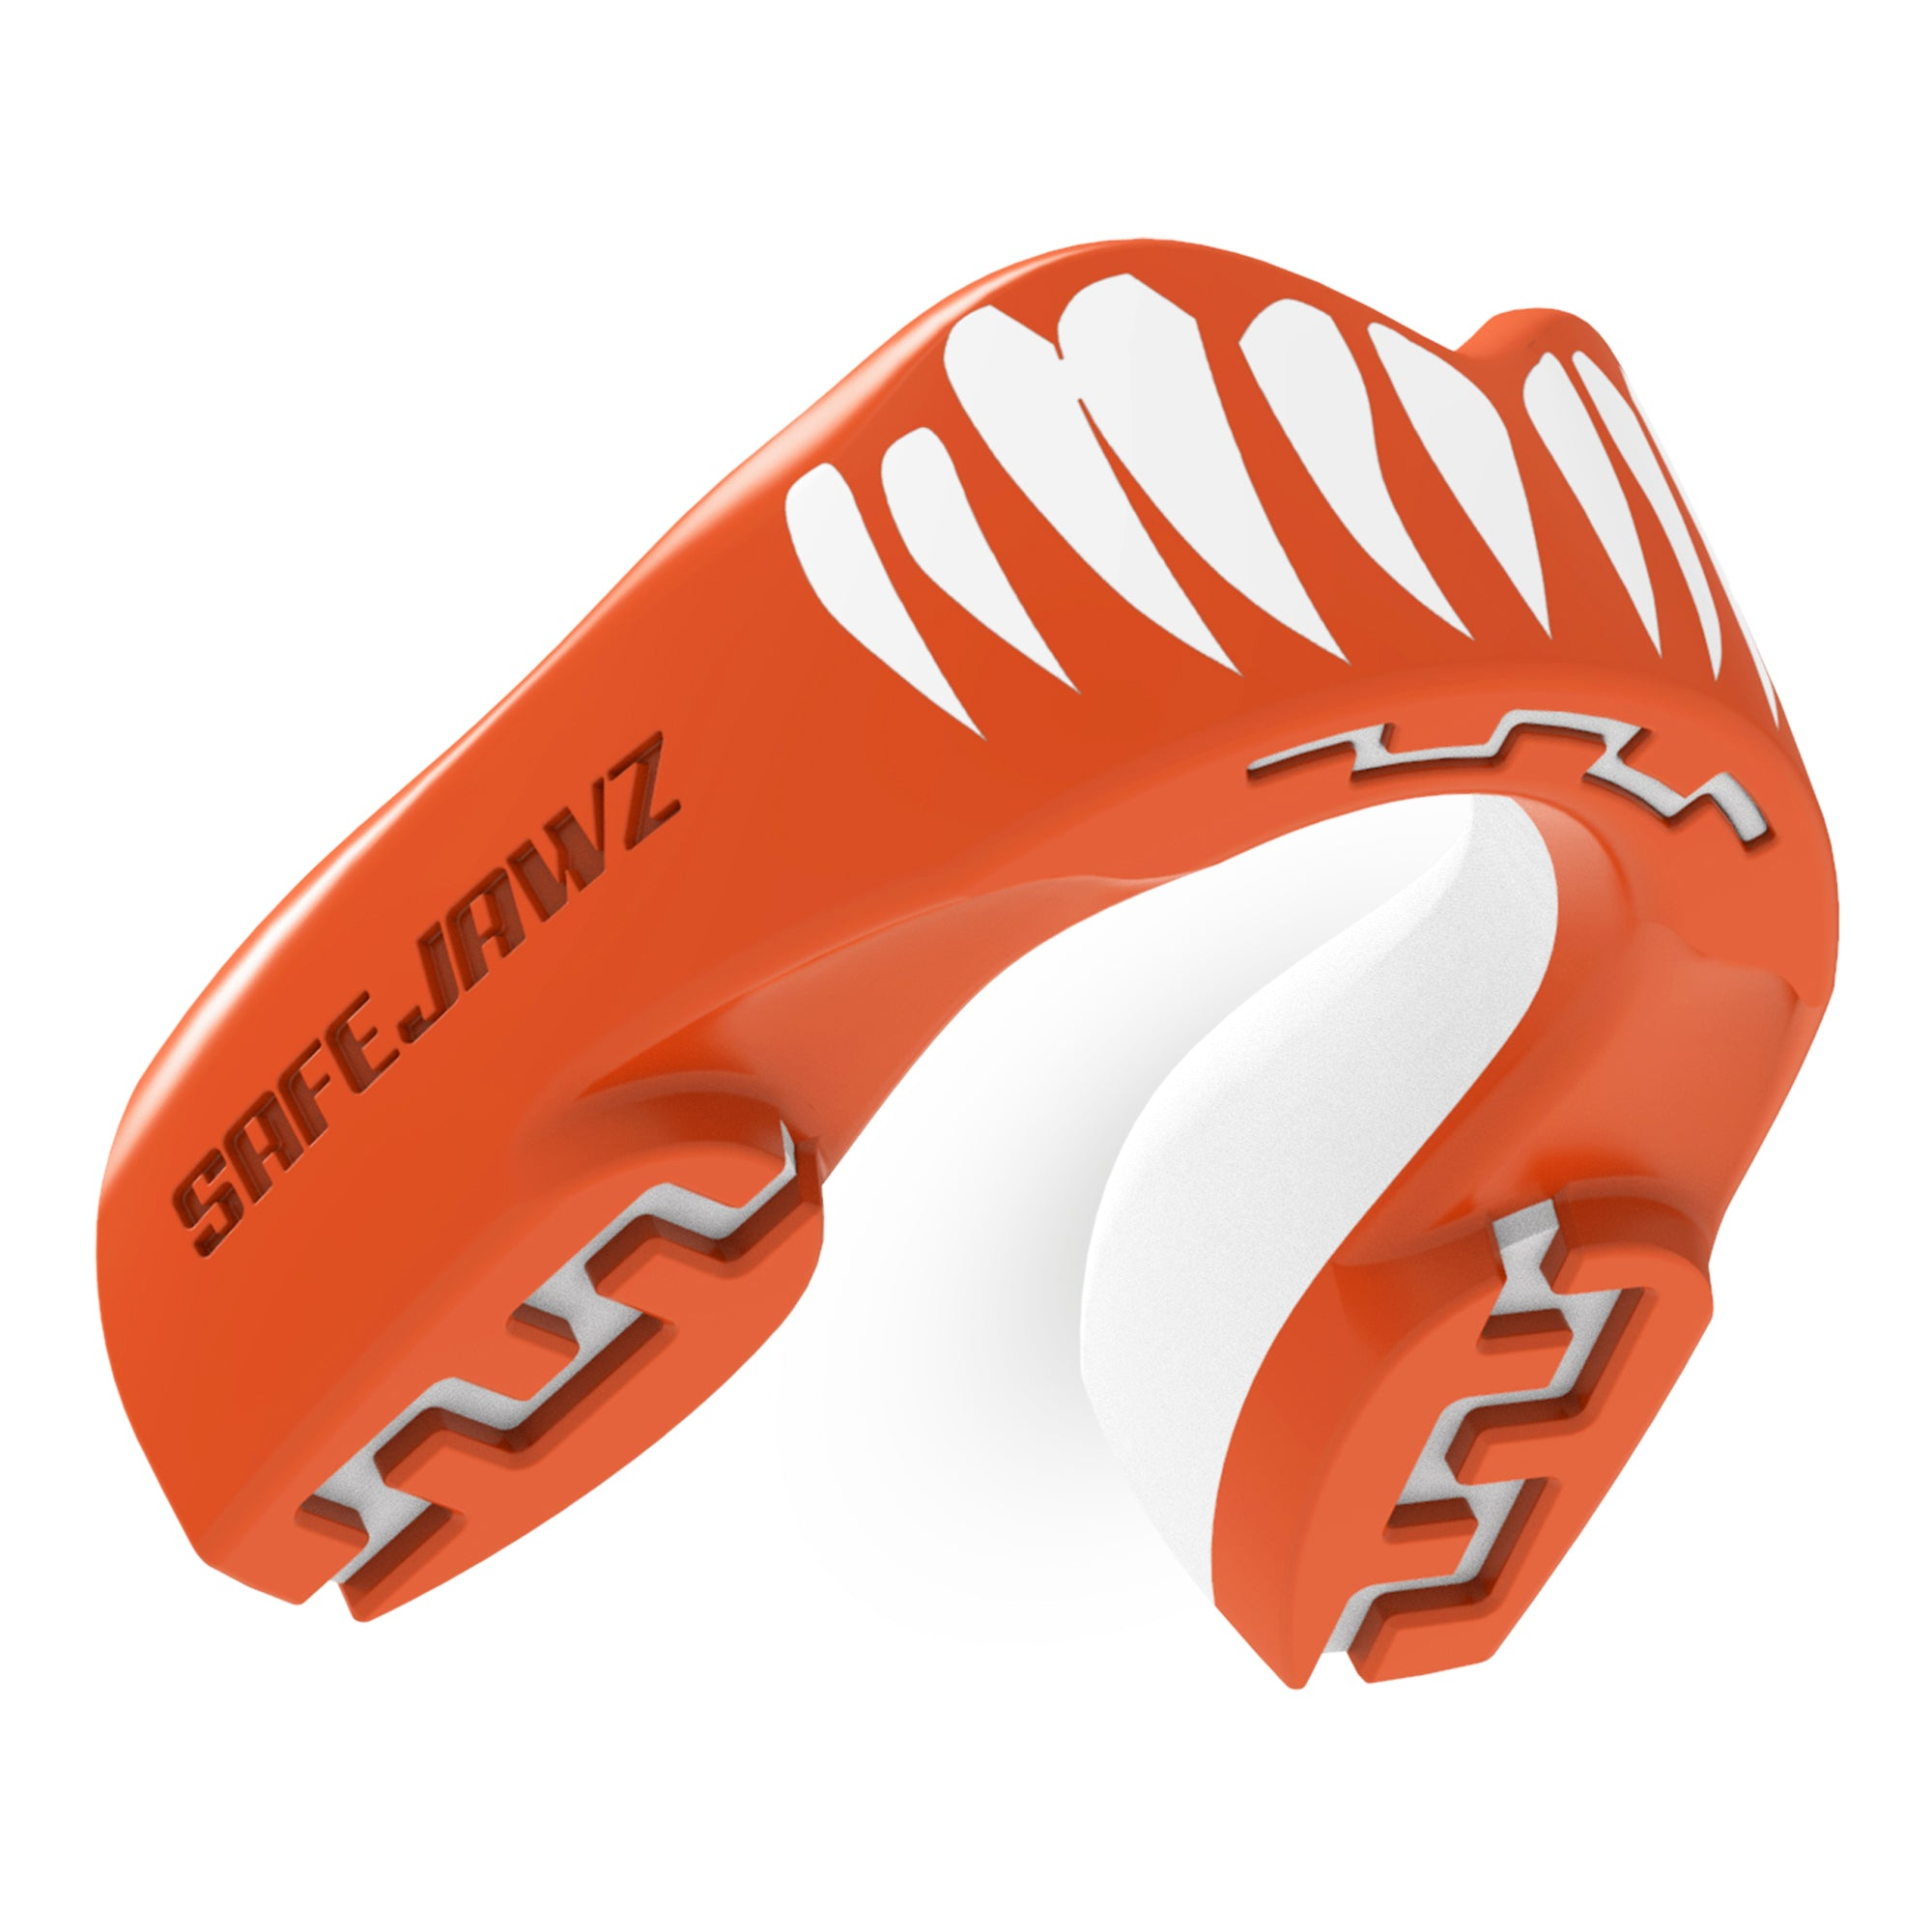 SAFEJAWZ® Extro Series Self-Fit 'Viper' Mouthguard